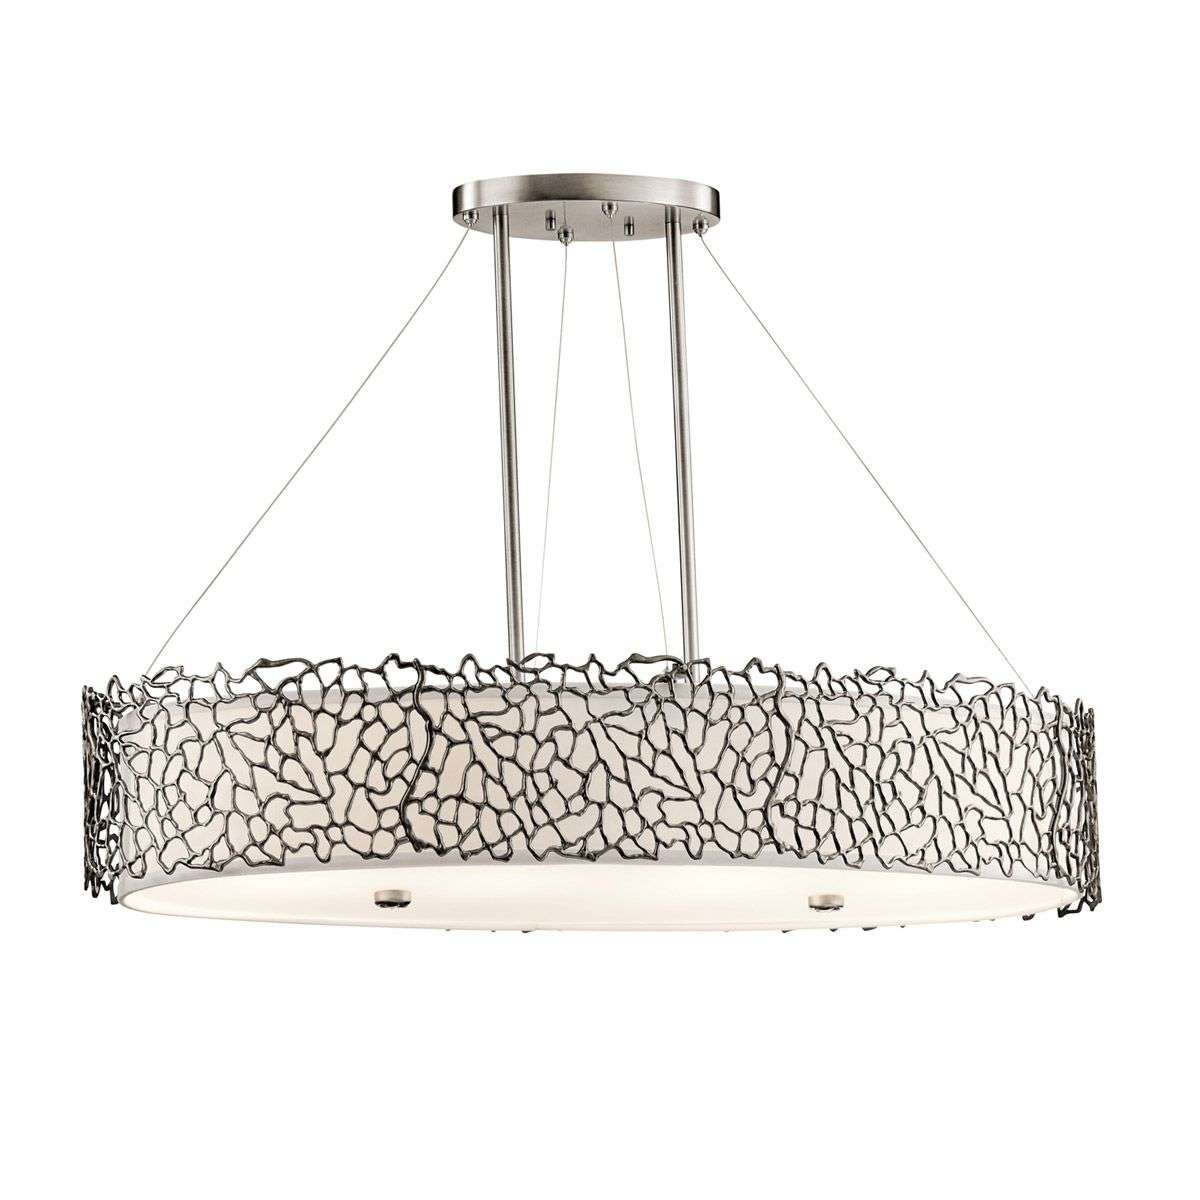 Silver coral oval pendant light lights silver coral oval pendant light 3048281 31 aloadofball Images